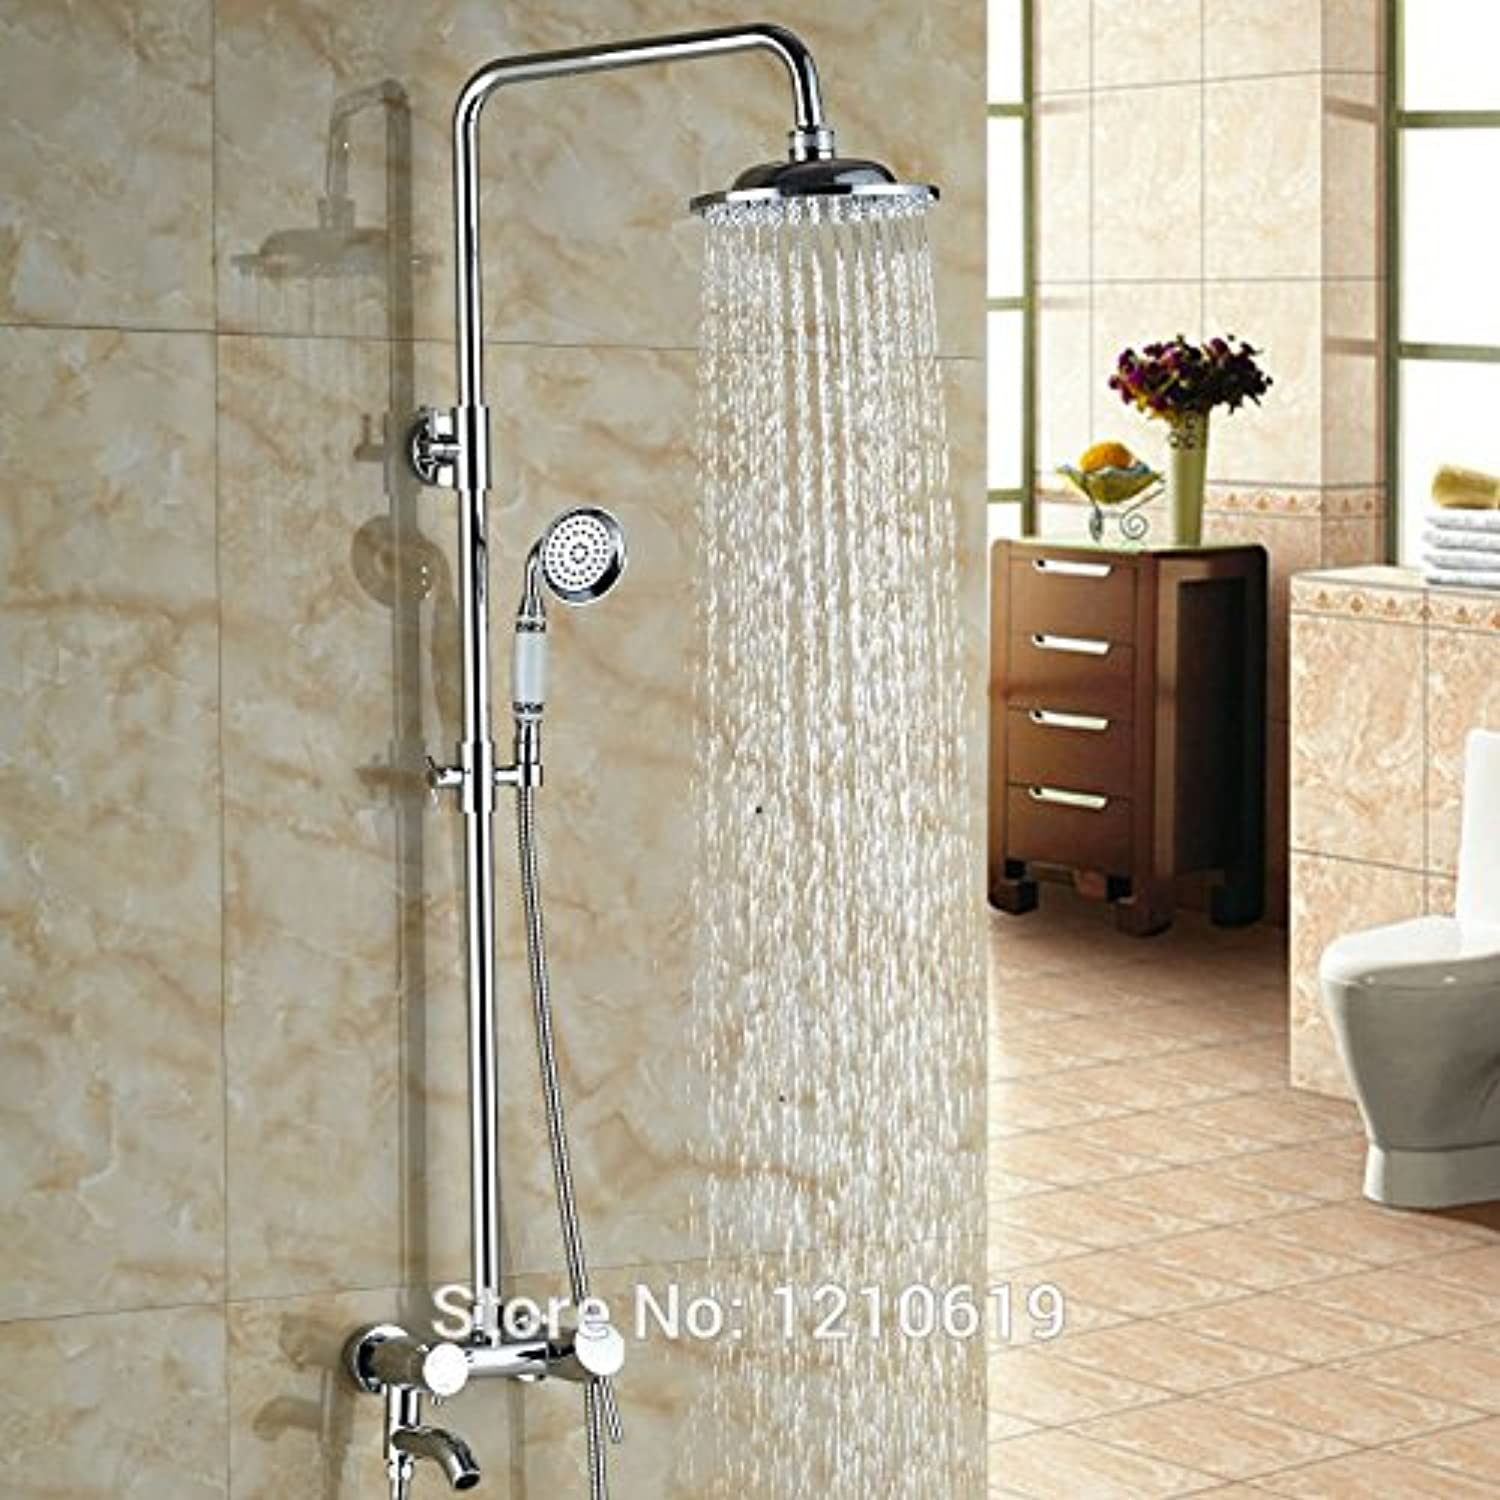 Newly Chrome Finished 8 Inch Shower Faucet Set w Ceramic Handheld Shower Wall Mount Shower Mixer Tap Single Handle,Multi